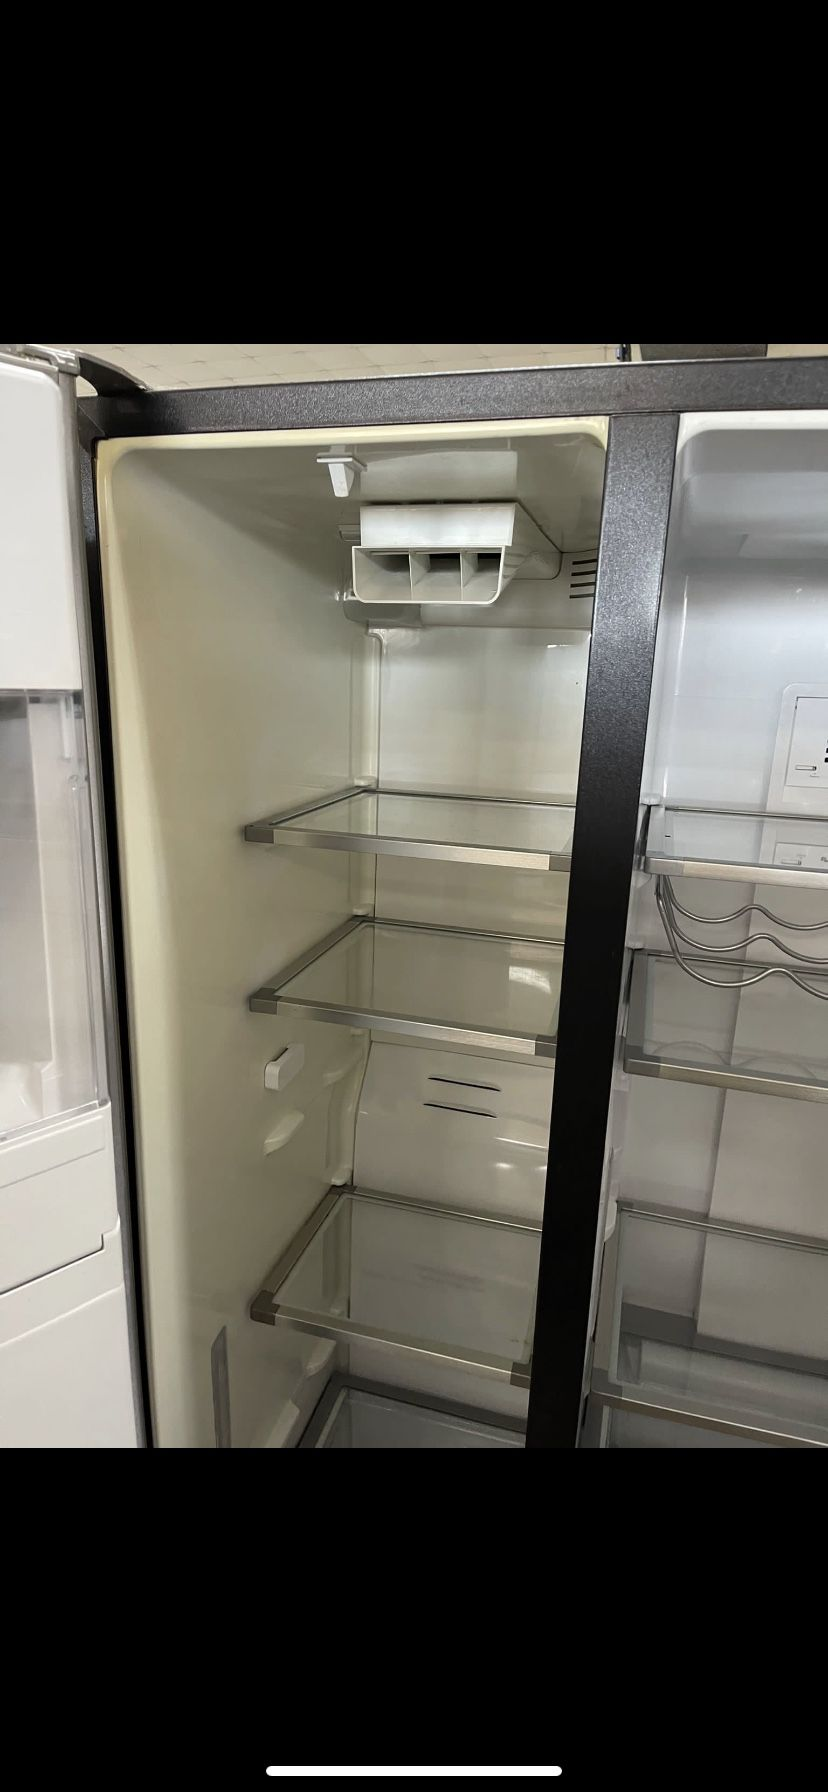 BRAND NEW Stainless Steel Kitchen Aid Refrigerator! WE FINANCE, No Credit Checks💰FREE DELIVERY 🚚